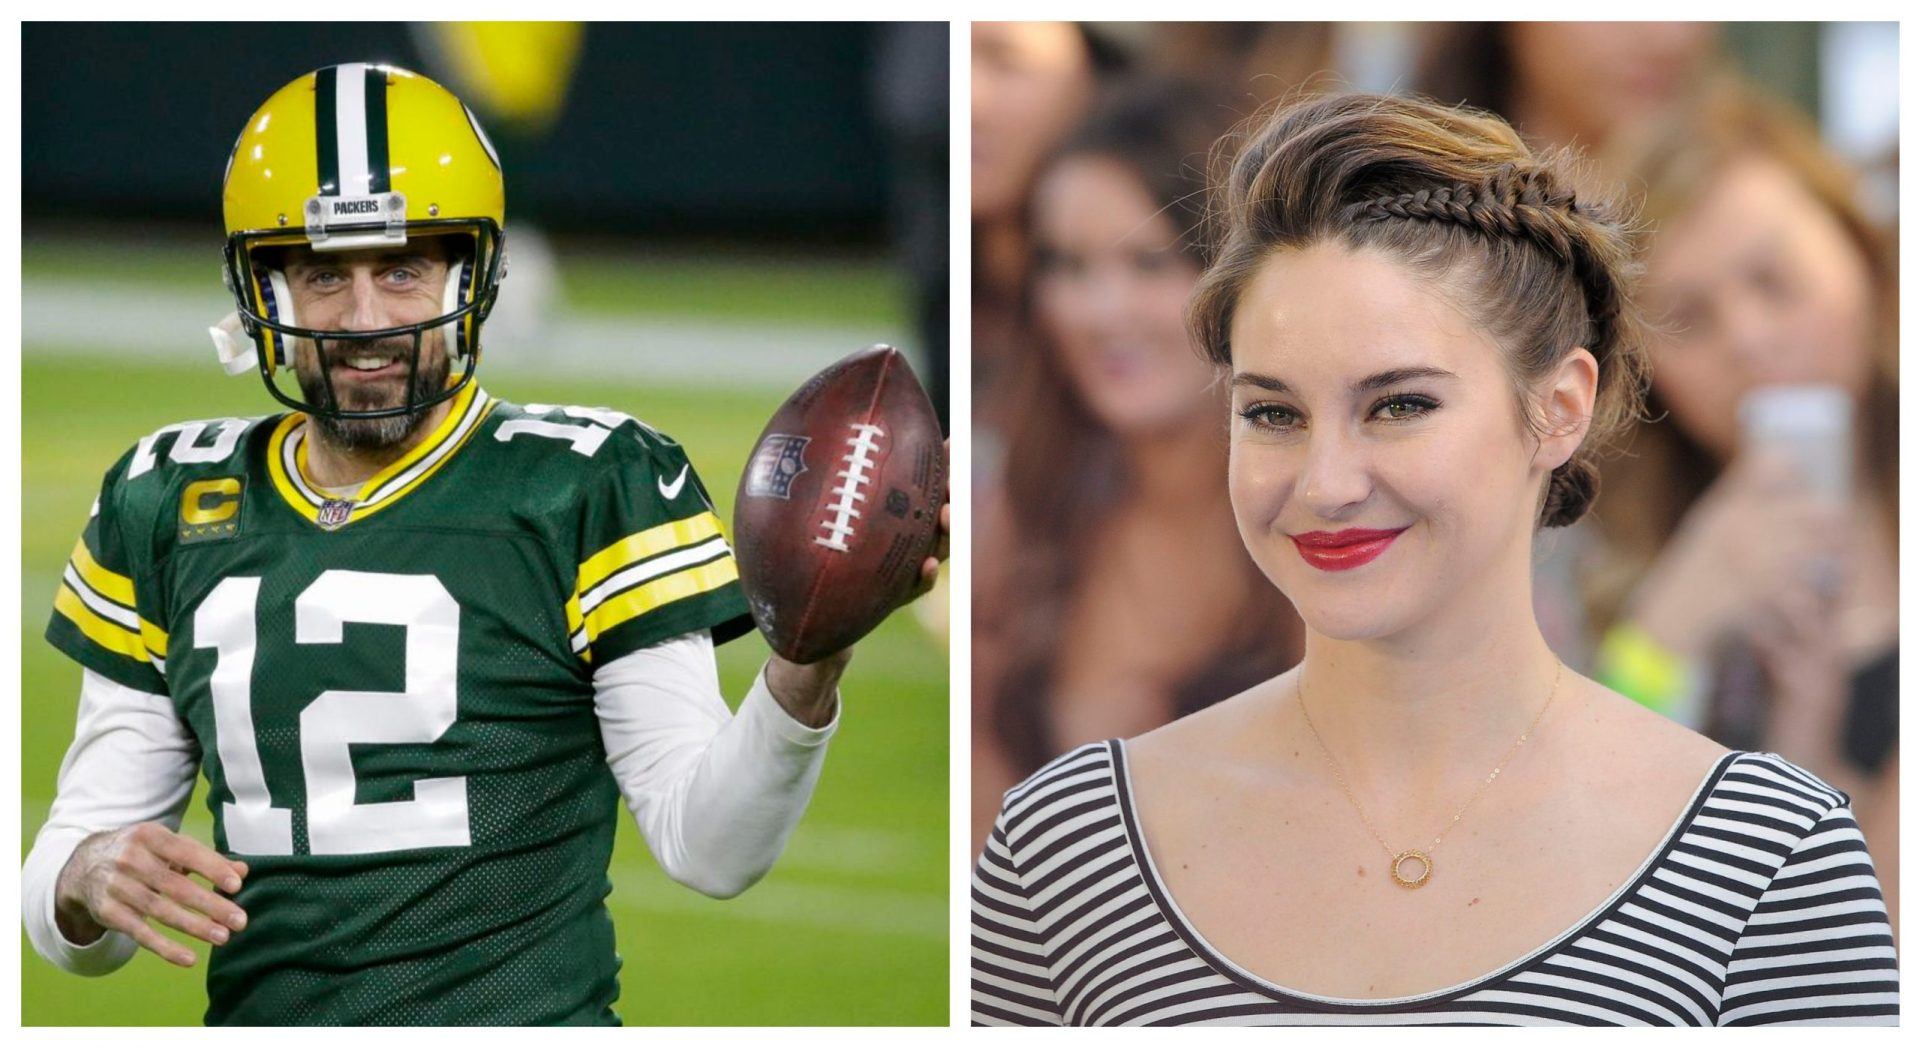 Actor Shailene Woodley confirms engagement with Packers QB Aaron Rodgers - THE SPORTS ROOM